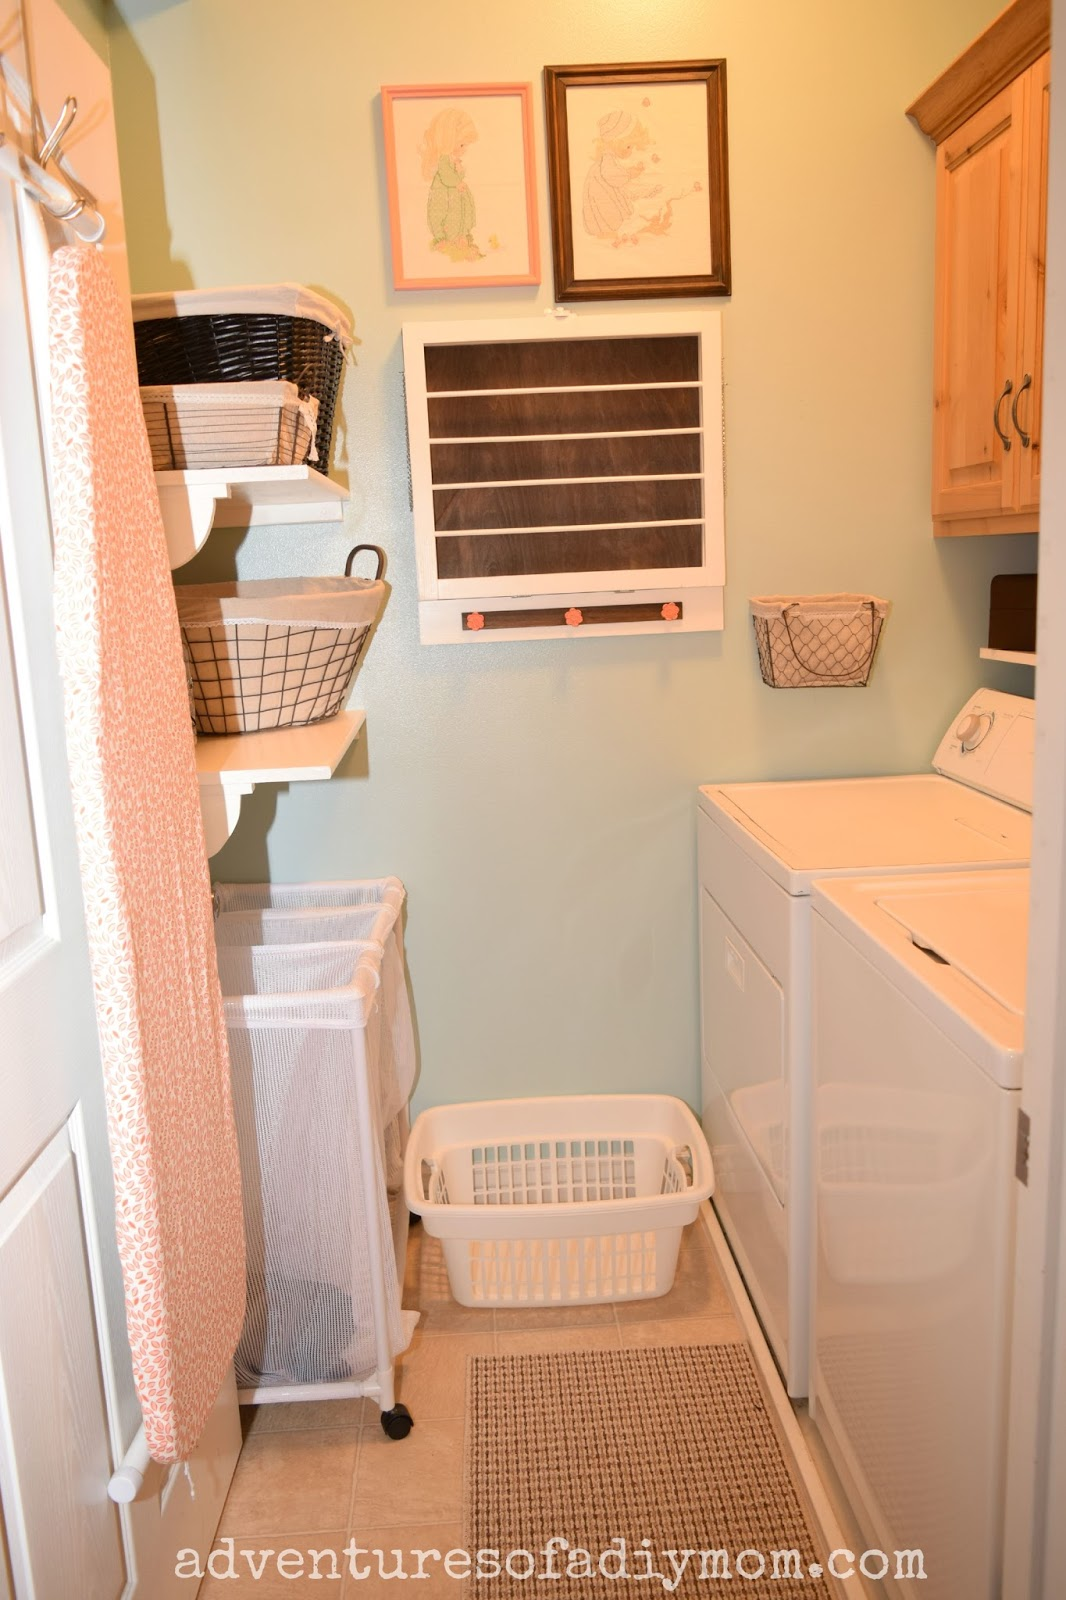 Laundry Room Makeover - Before and After Pictures - Adventures of ...